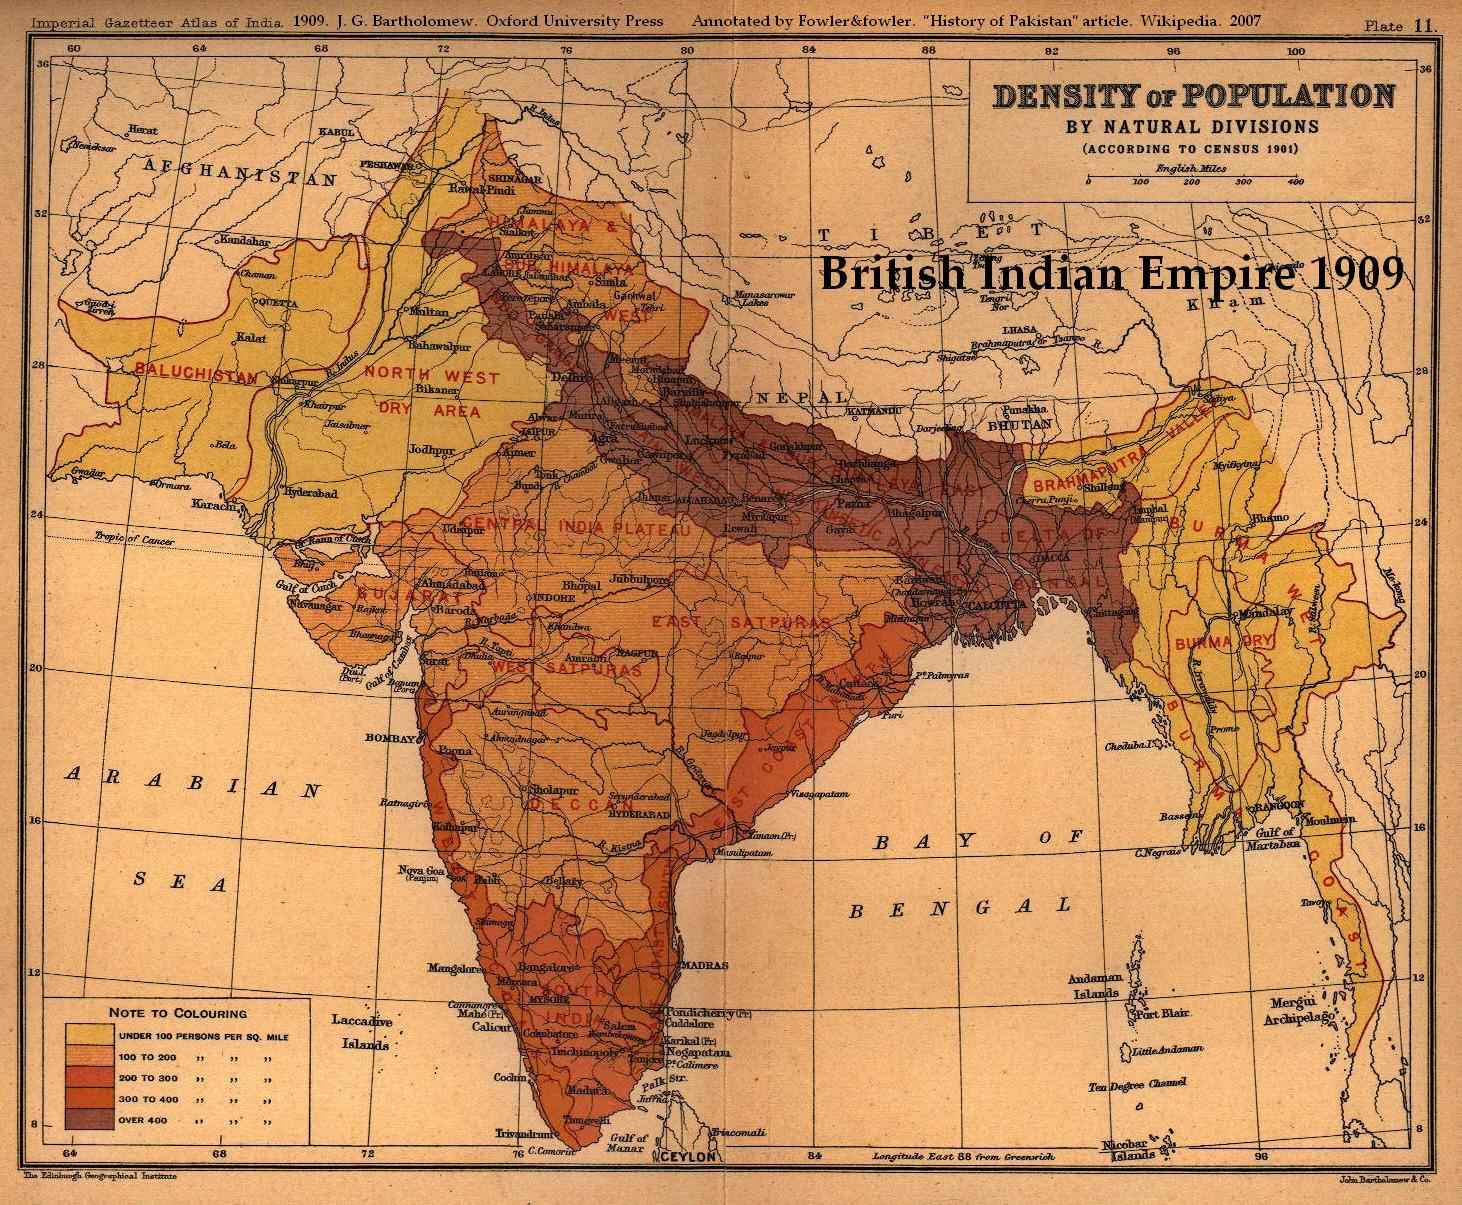 Old map of india gumiabroncs Gallery